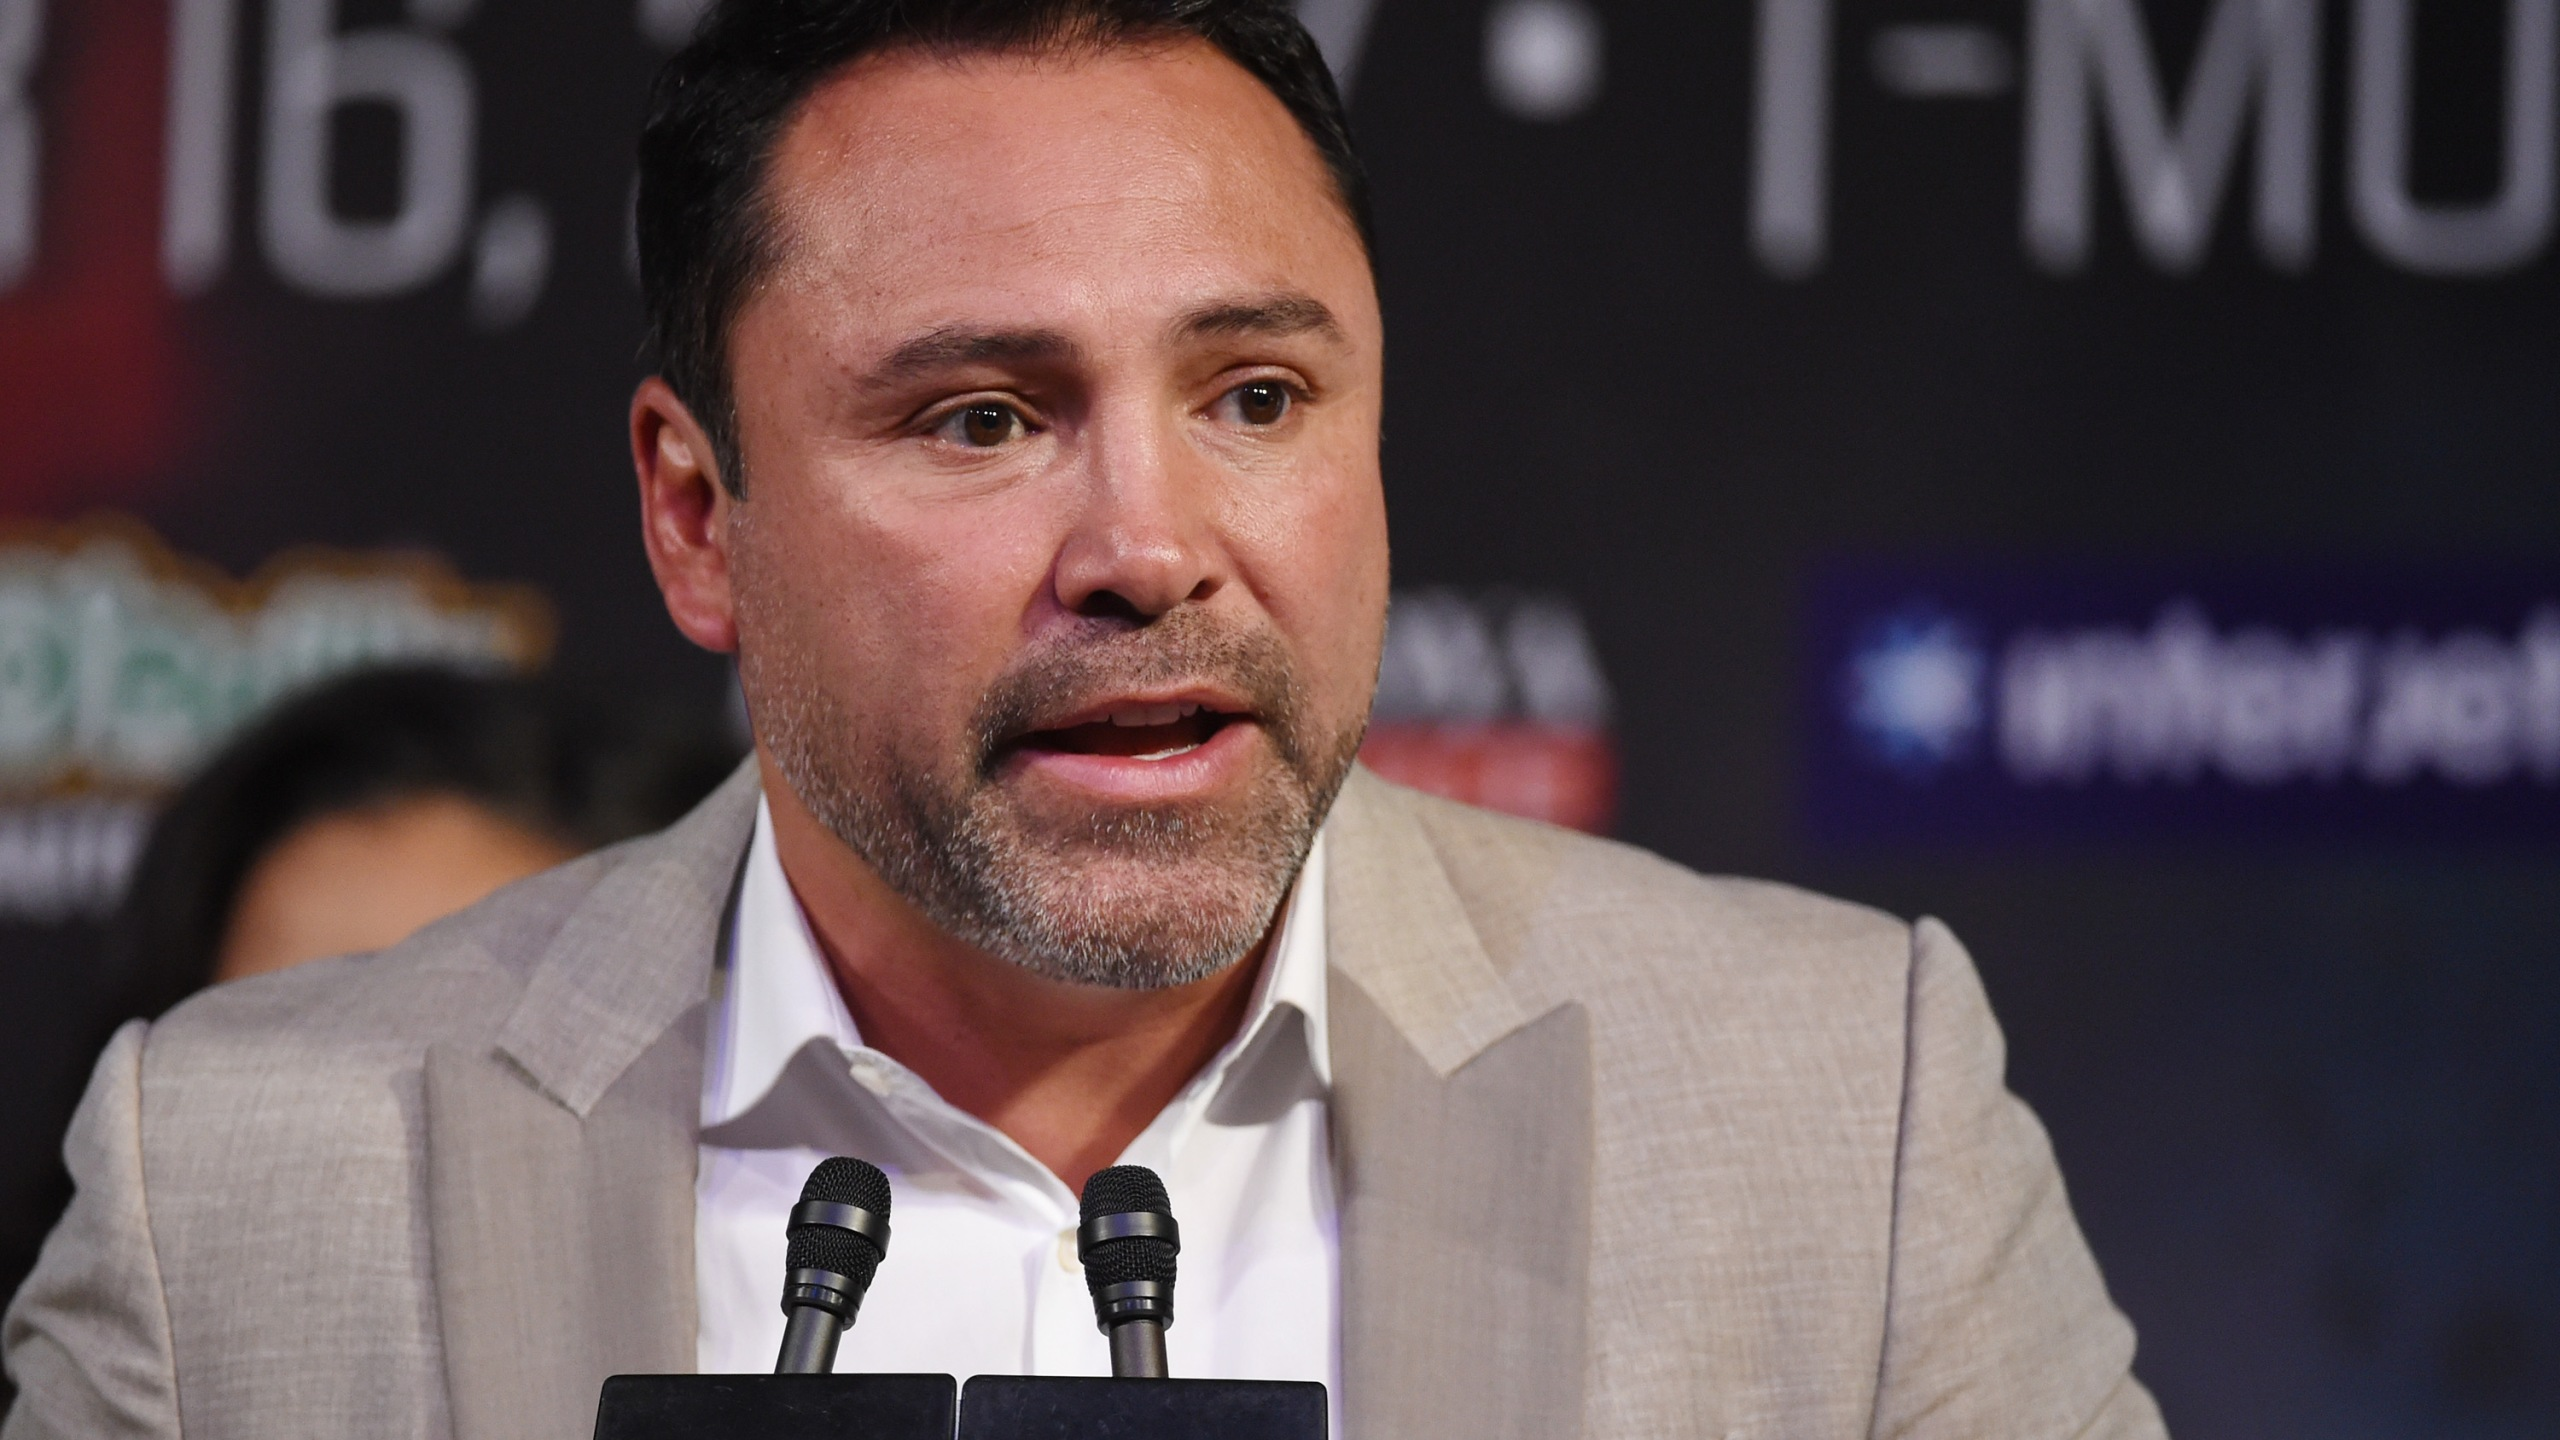 Golden Boy Promotions Chairman and CEO Oscar De La Hoya speaks during a news conference for the bout between middleweight champion Gennady Golovkin and Canelo Alvarez at MGM Grand Hotel & Casino in Las Vegas on Sept. 12, 2017. (Credit: Ethan Miller / Getty Images)